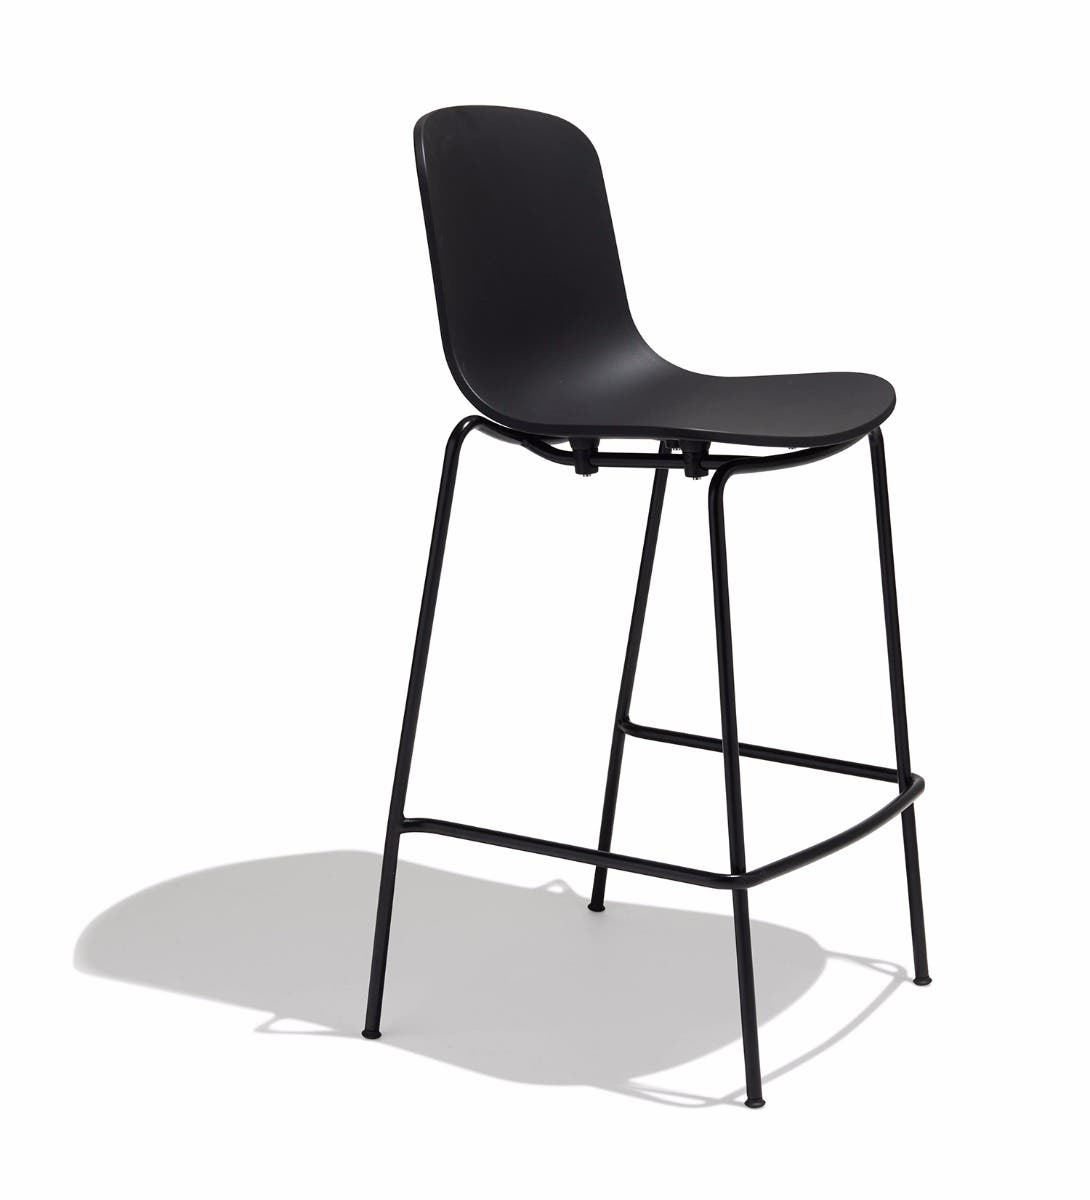 Admirable Holi Bar Stool Gmtry Best Dining Table And Chair Ideas Images Gmtryco